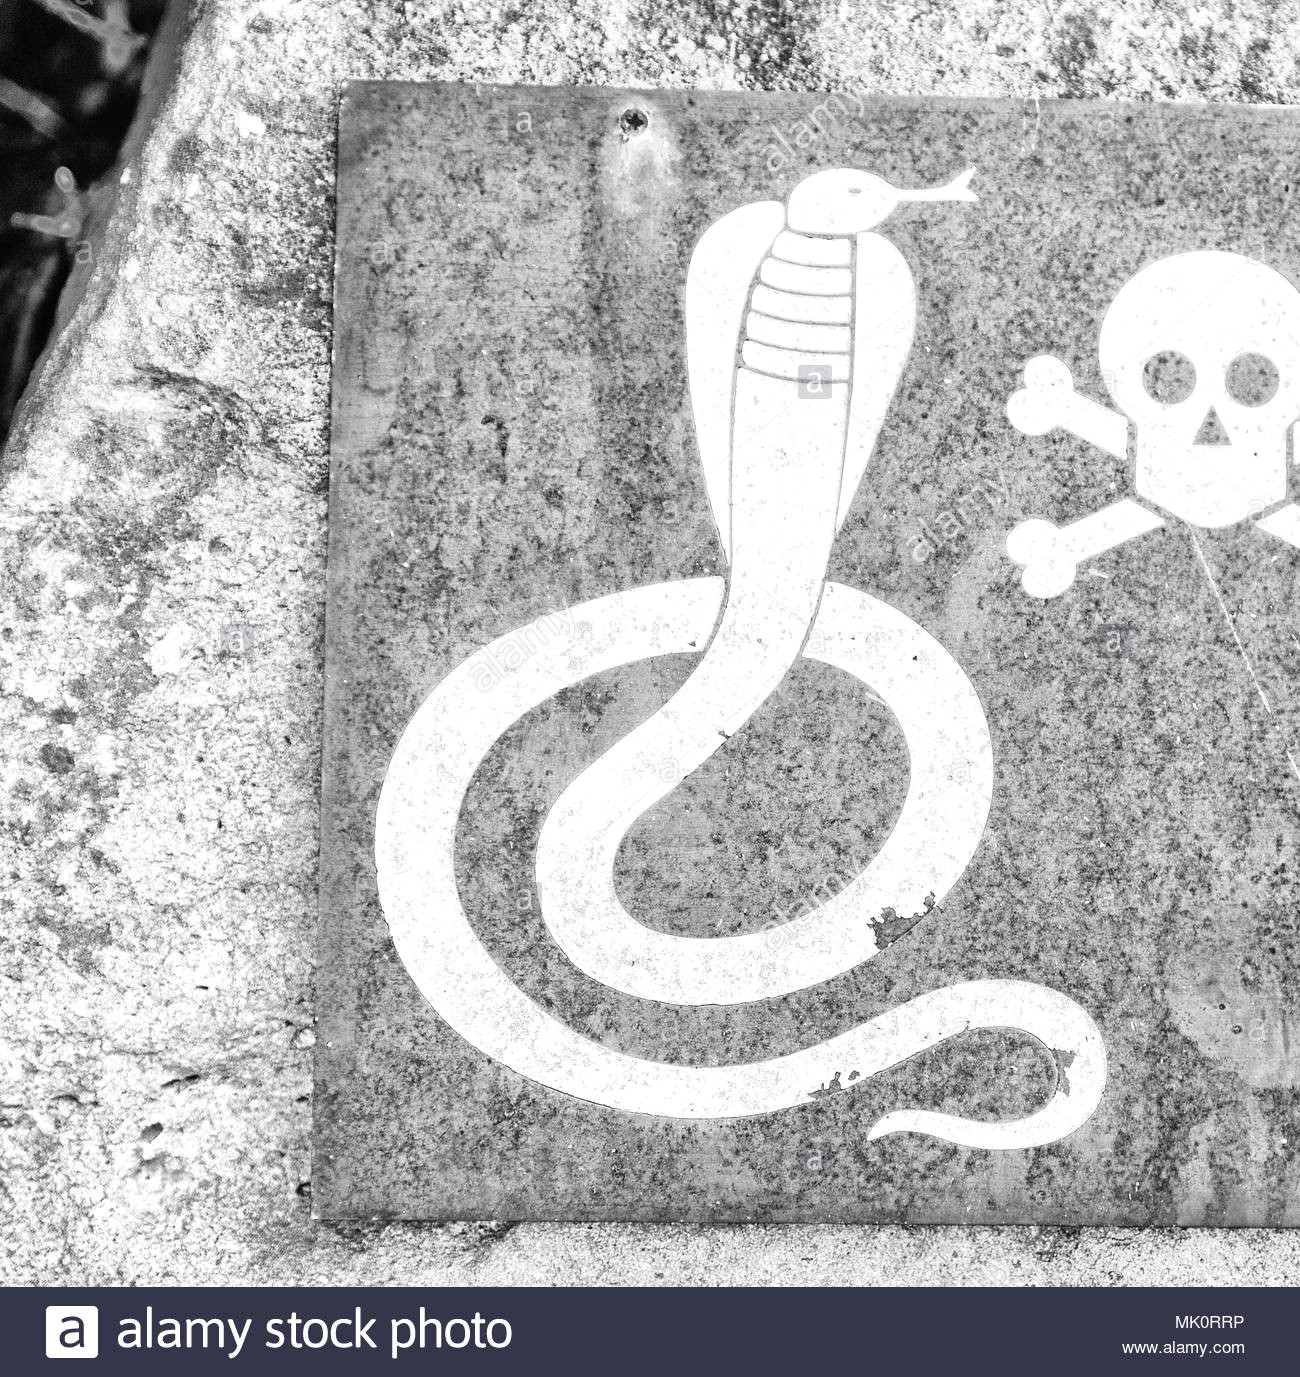 in south africa the metal signal of the danger for wild snake and the skull and